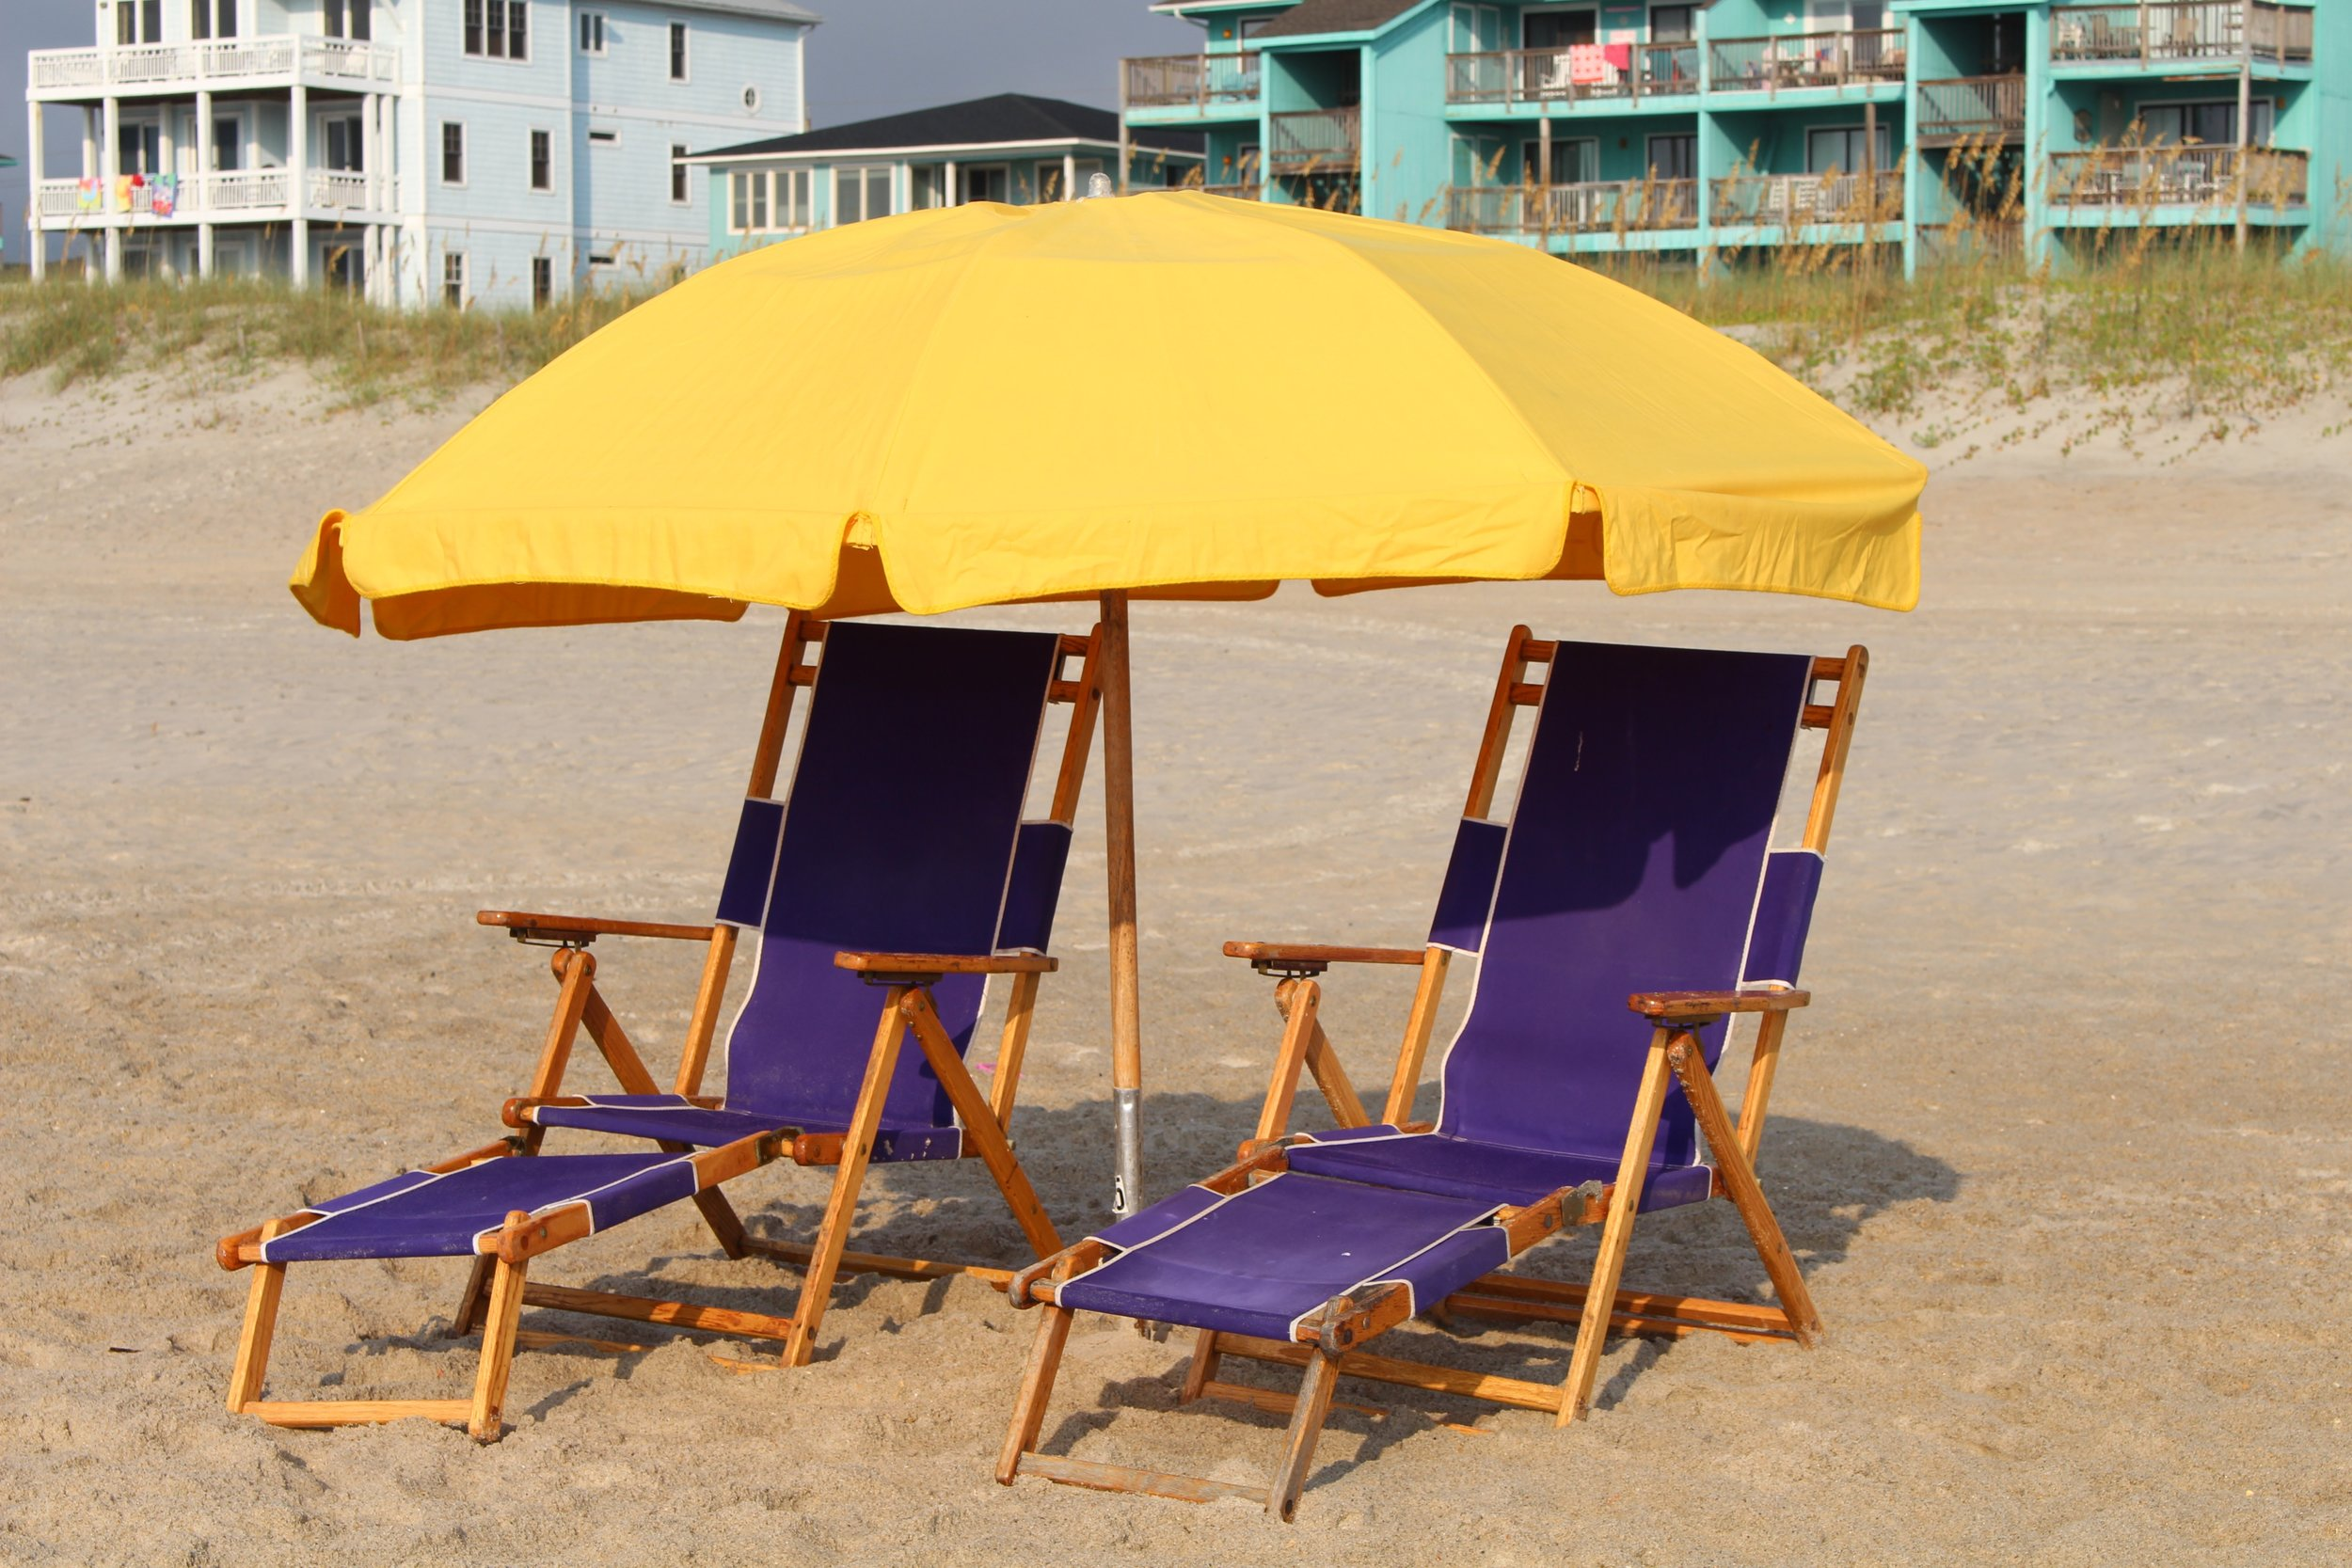 Purple beach chairs at Carolina Beach Photo by Alisha Wielfaert